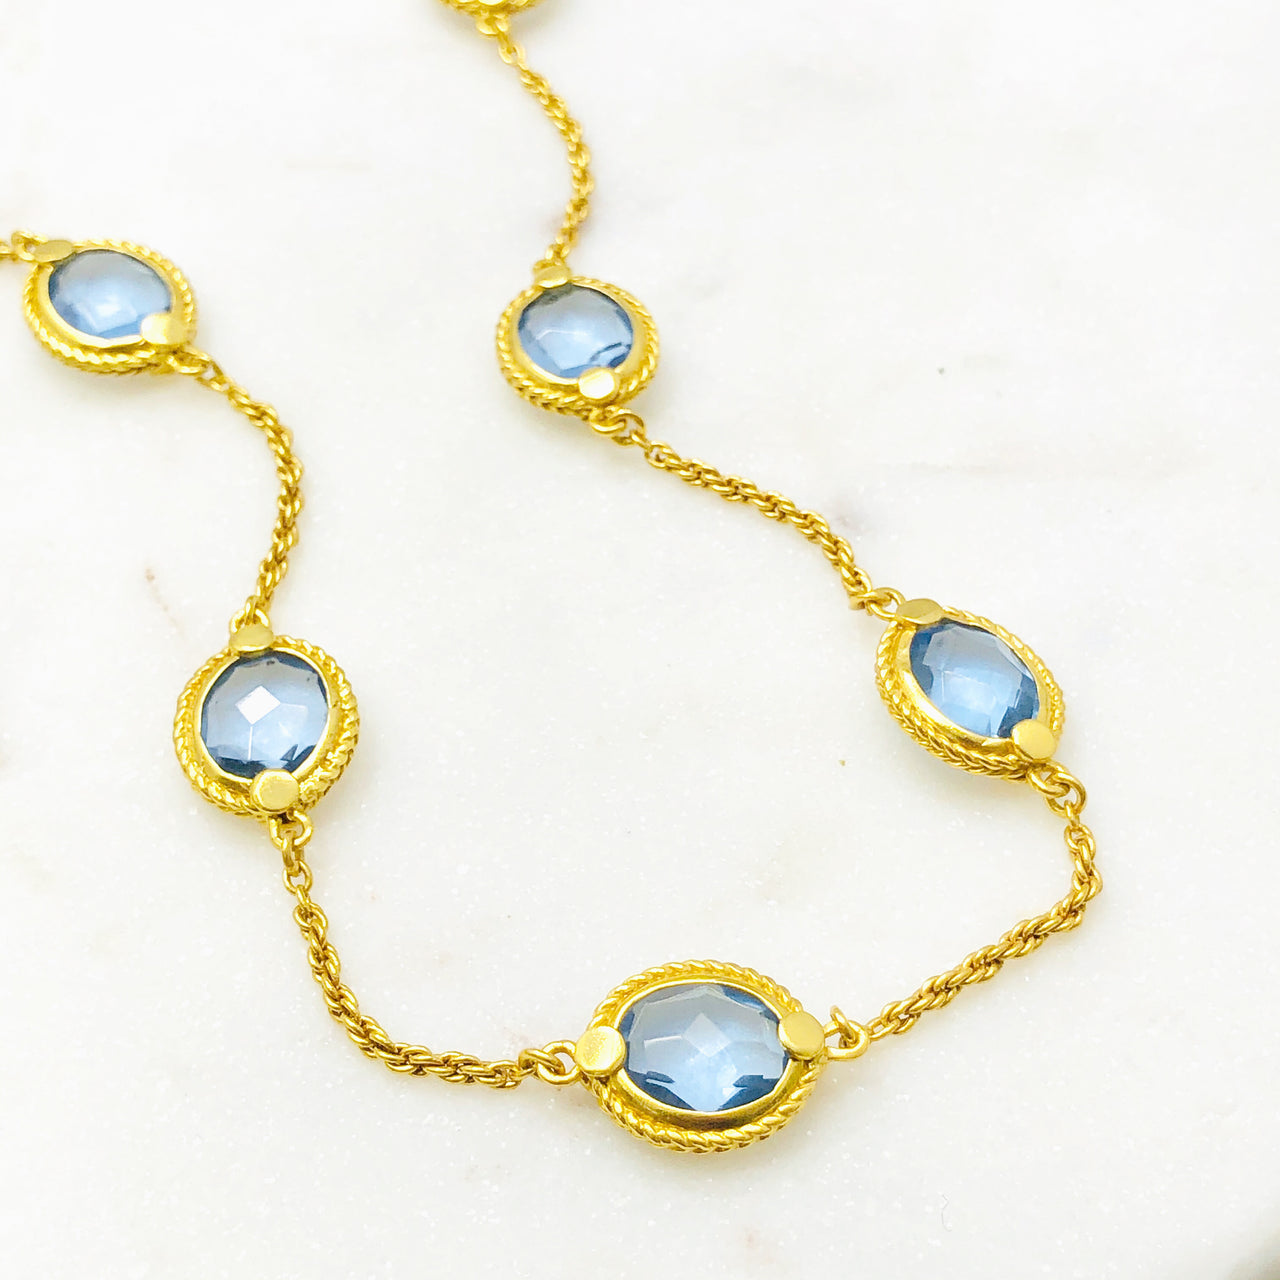 Yellow Gold Plated Chalcedony Necklace.